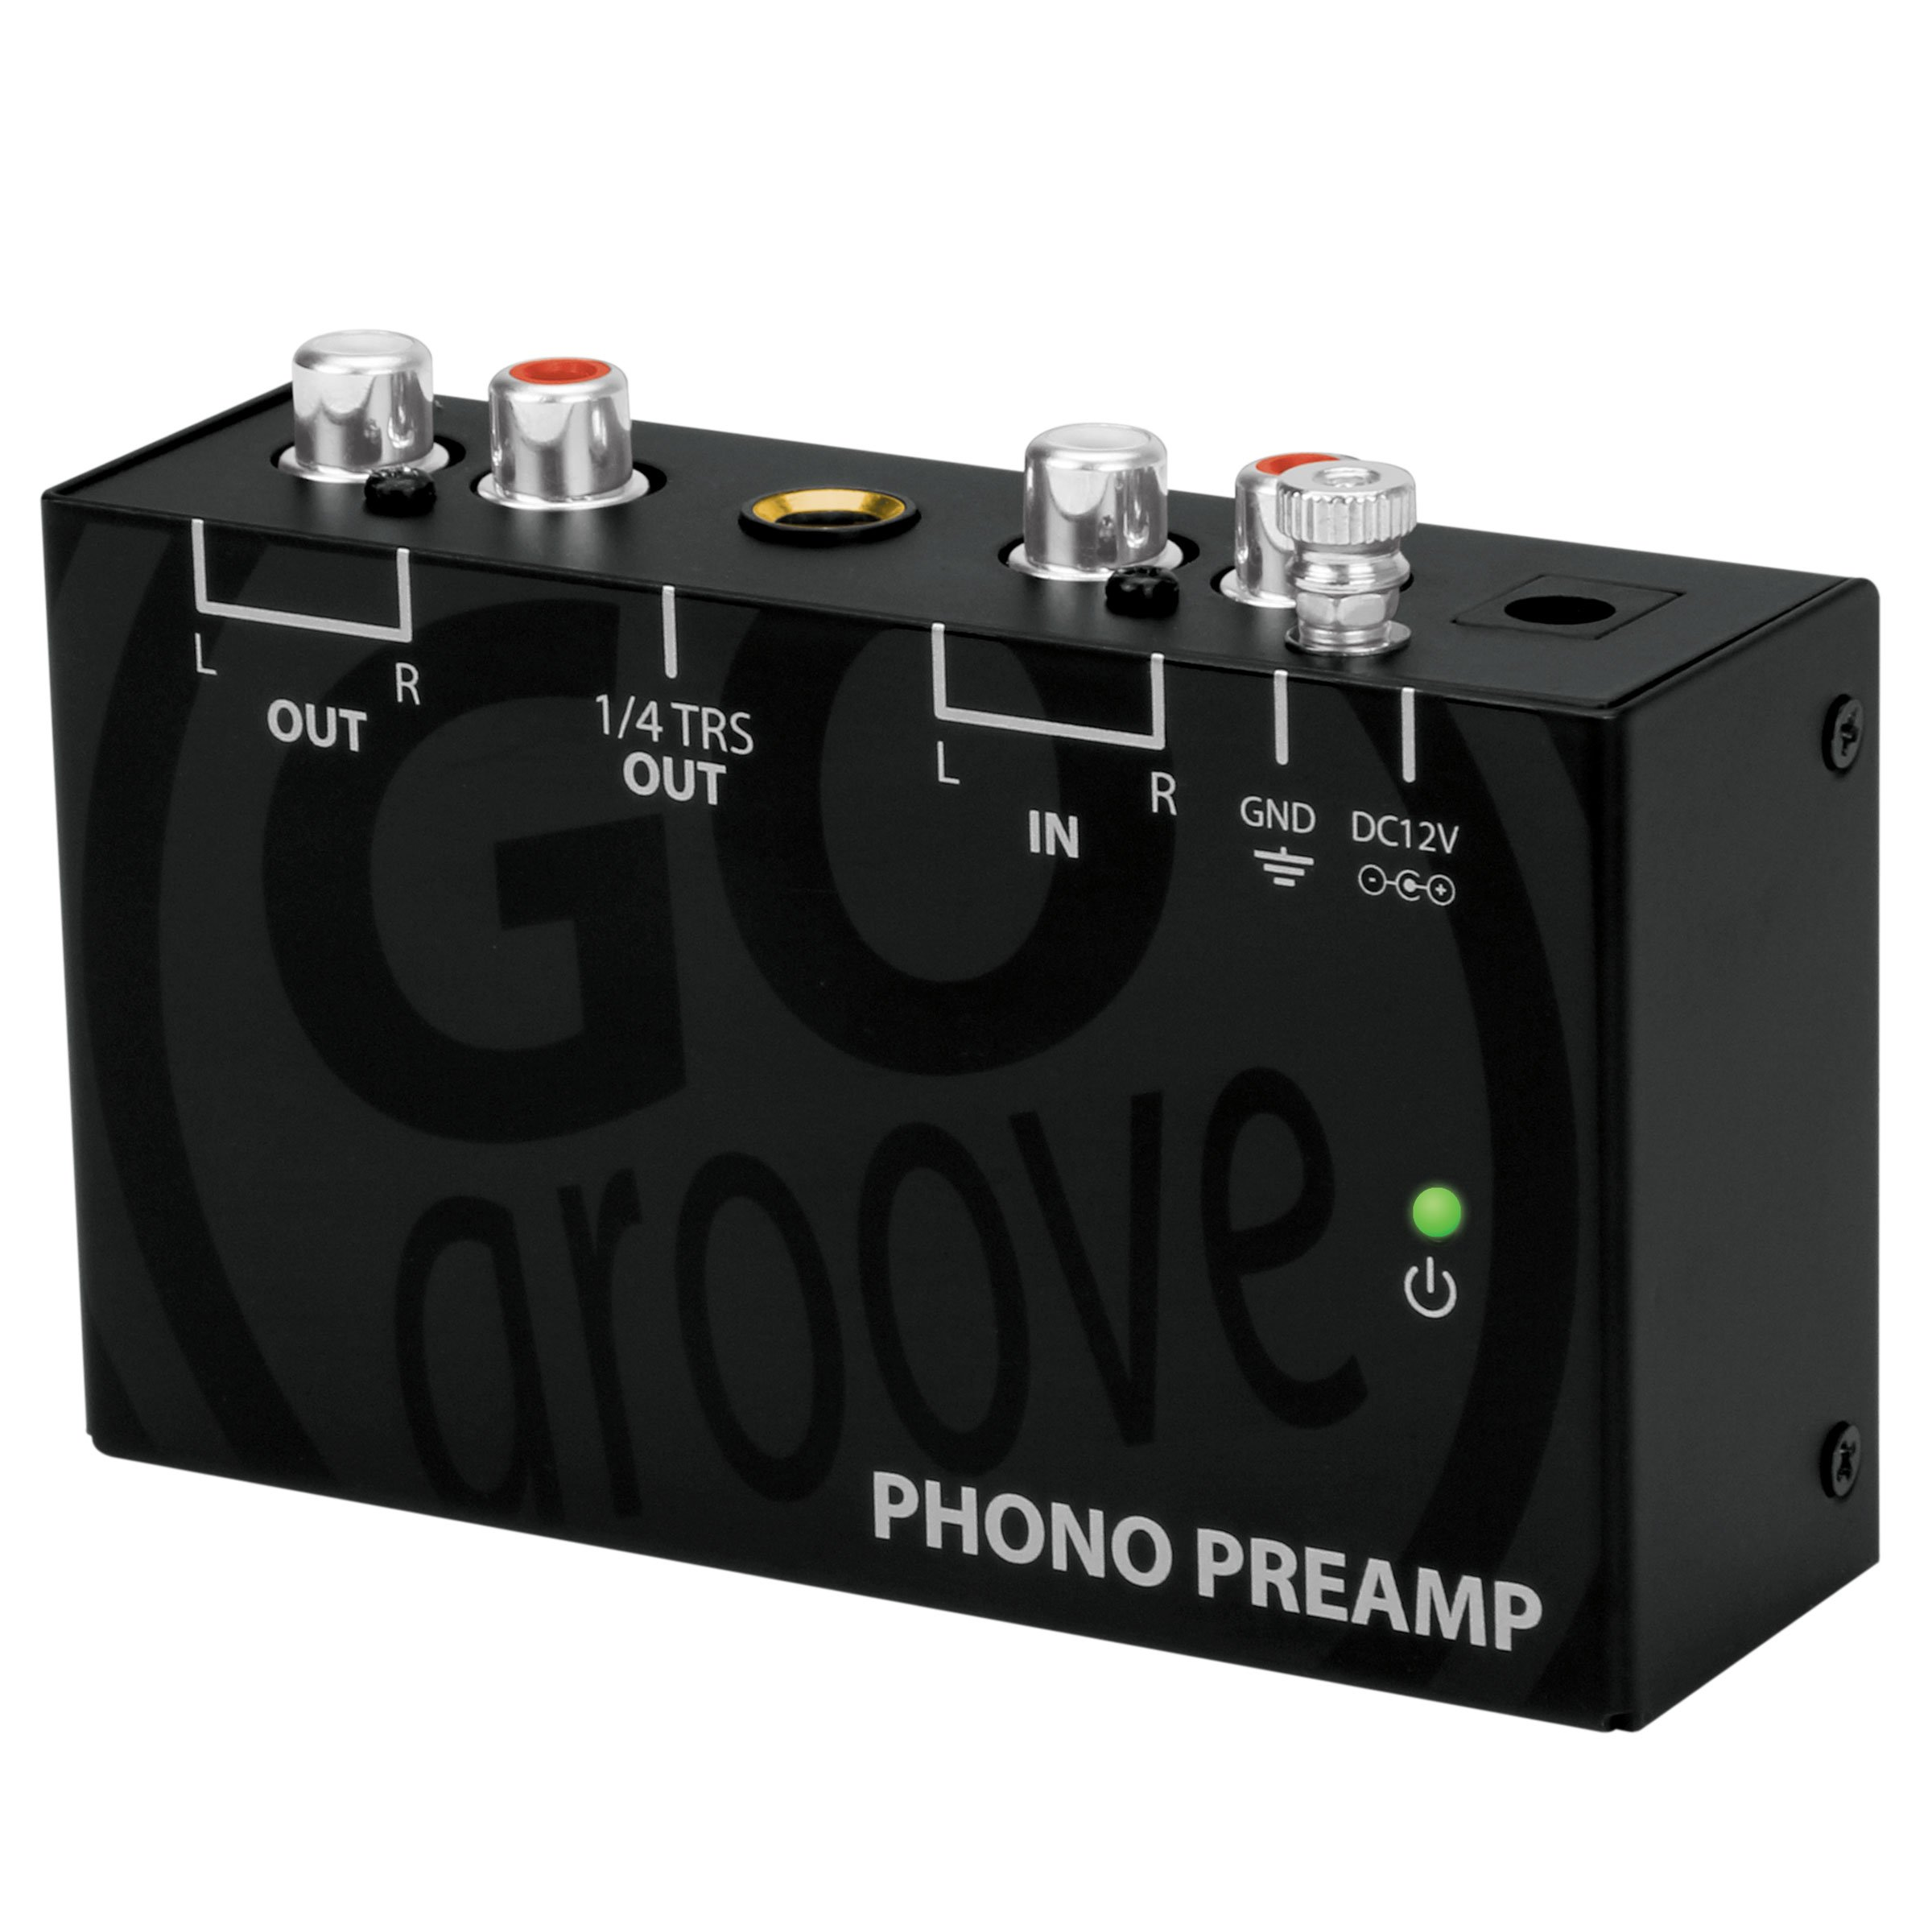 Mini Turntable Phono Preamp for Bookshelf Speakers by GOgroove - Preamplifier Connects to AOMAIS , Edifier , Klipsch , Mackie , Micca , Pioneer , Sony , Monoprice and More Bookshelf Speakers by GOgroove